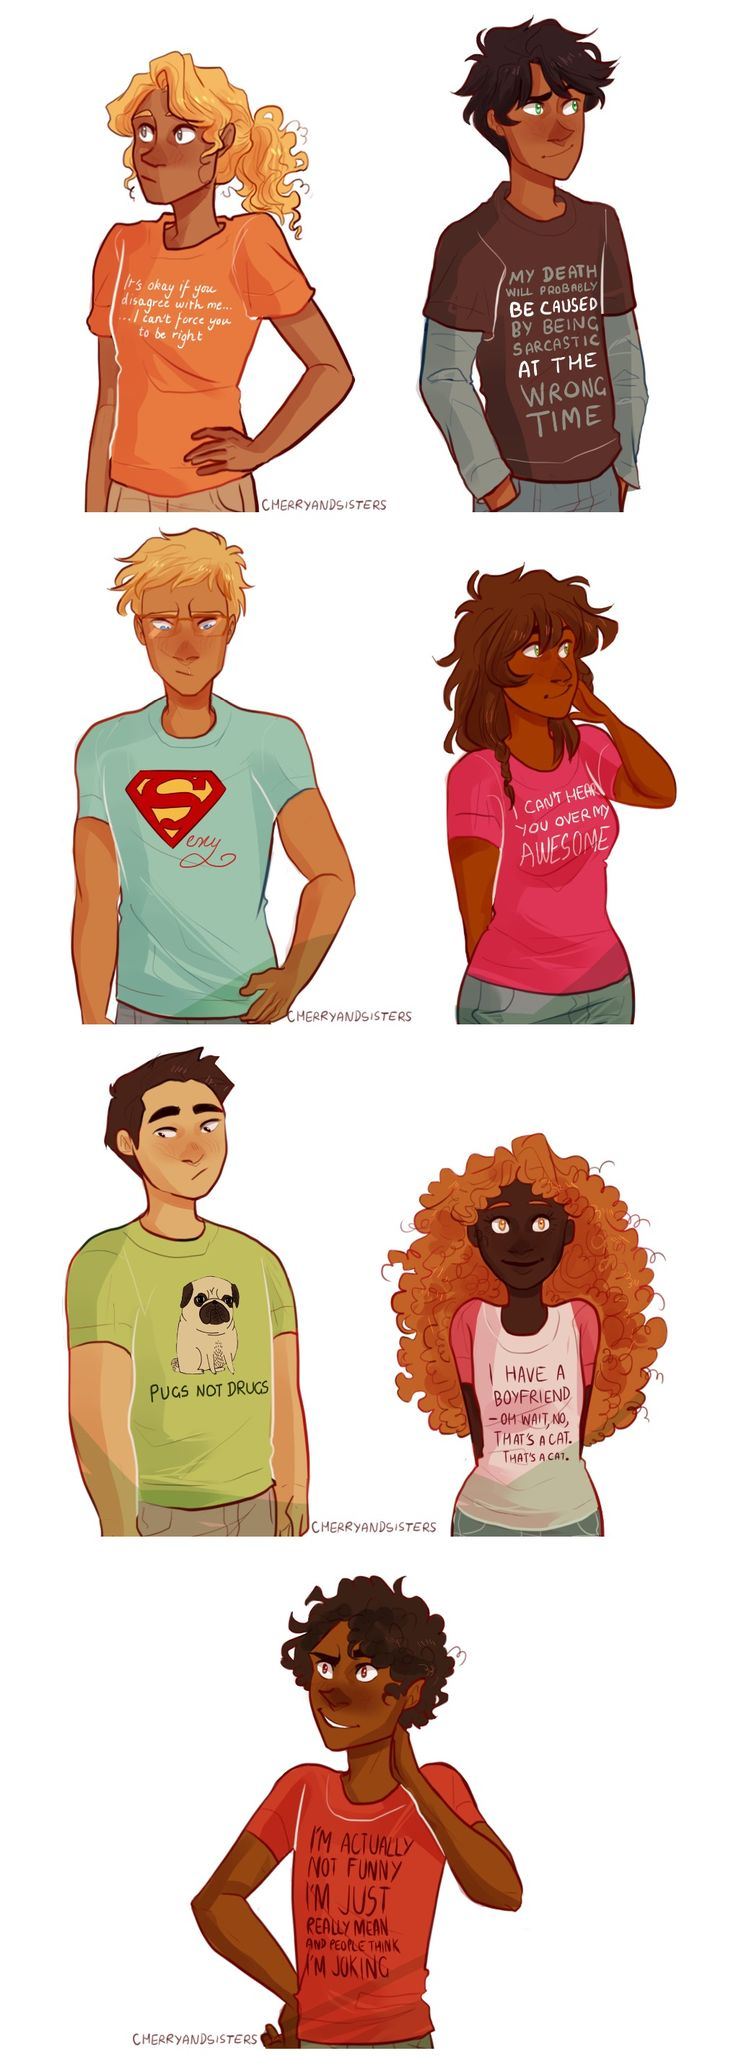 THOSE ARE TUMBLR QUOTES ON THEIR SHIRTS XD